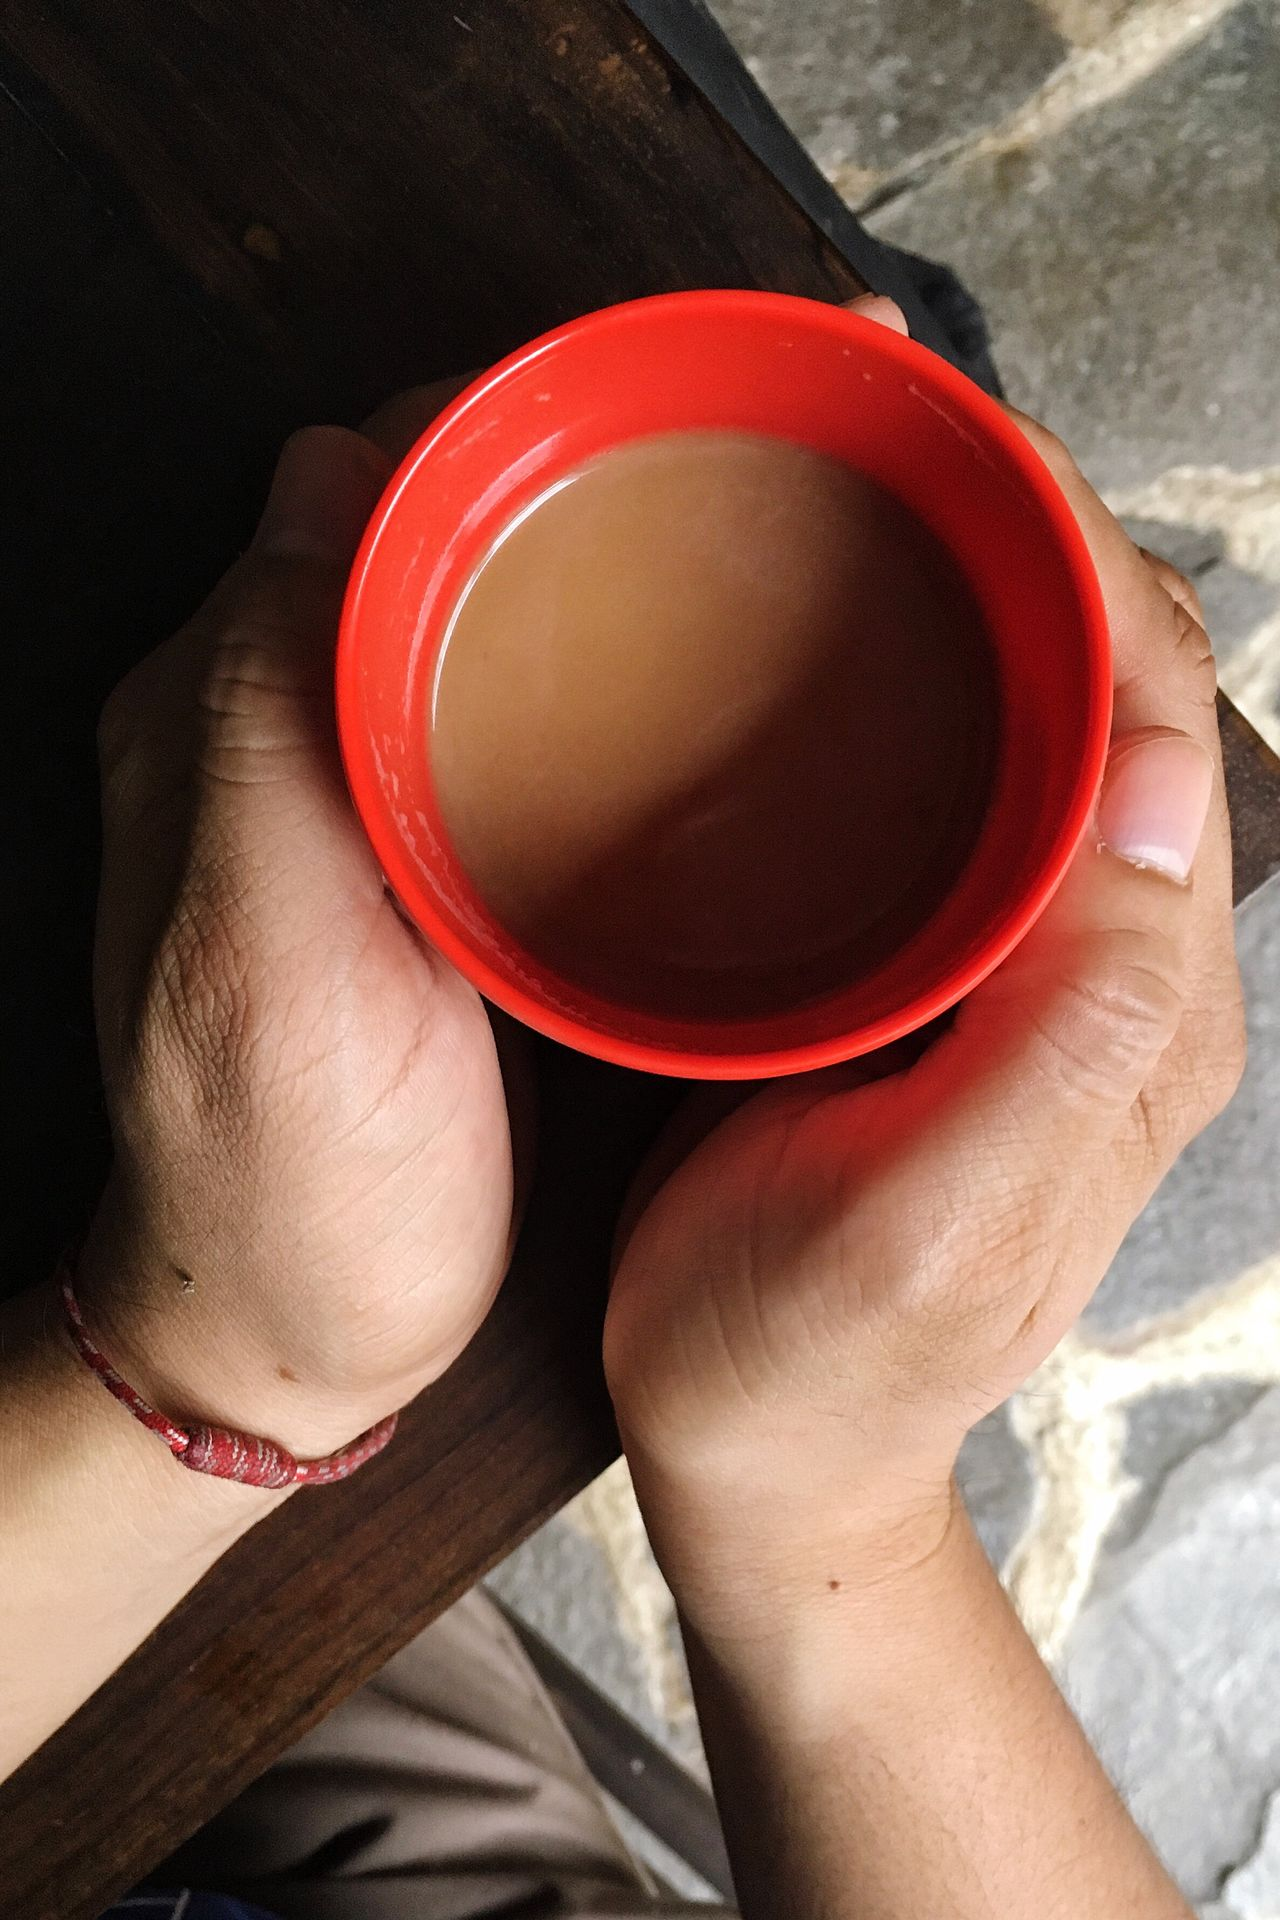 Human Body Part Holding Human Hand One Person Coffee Cup Coffee - Drink High Angle View Refreshment